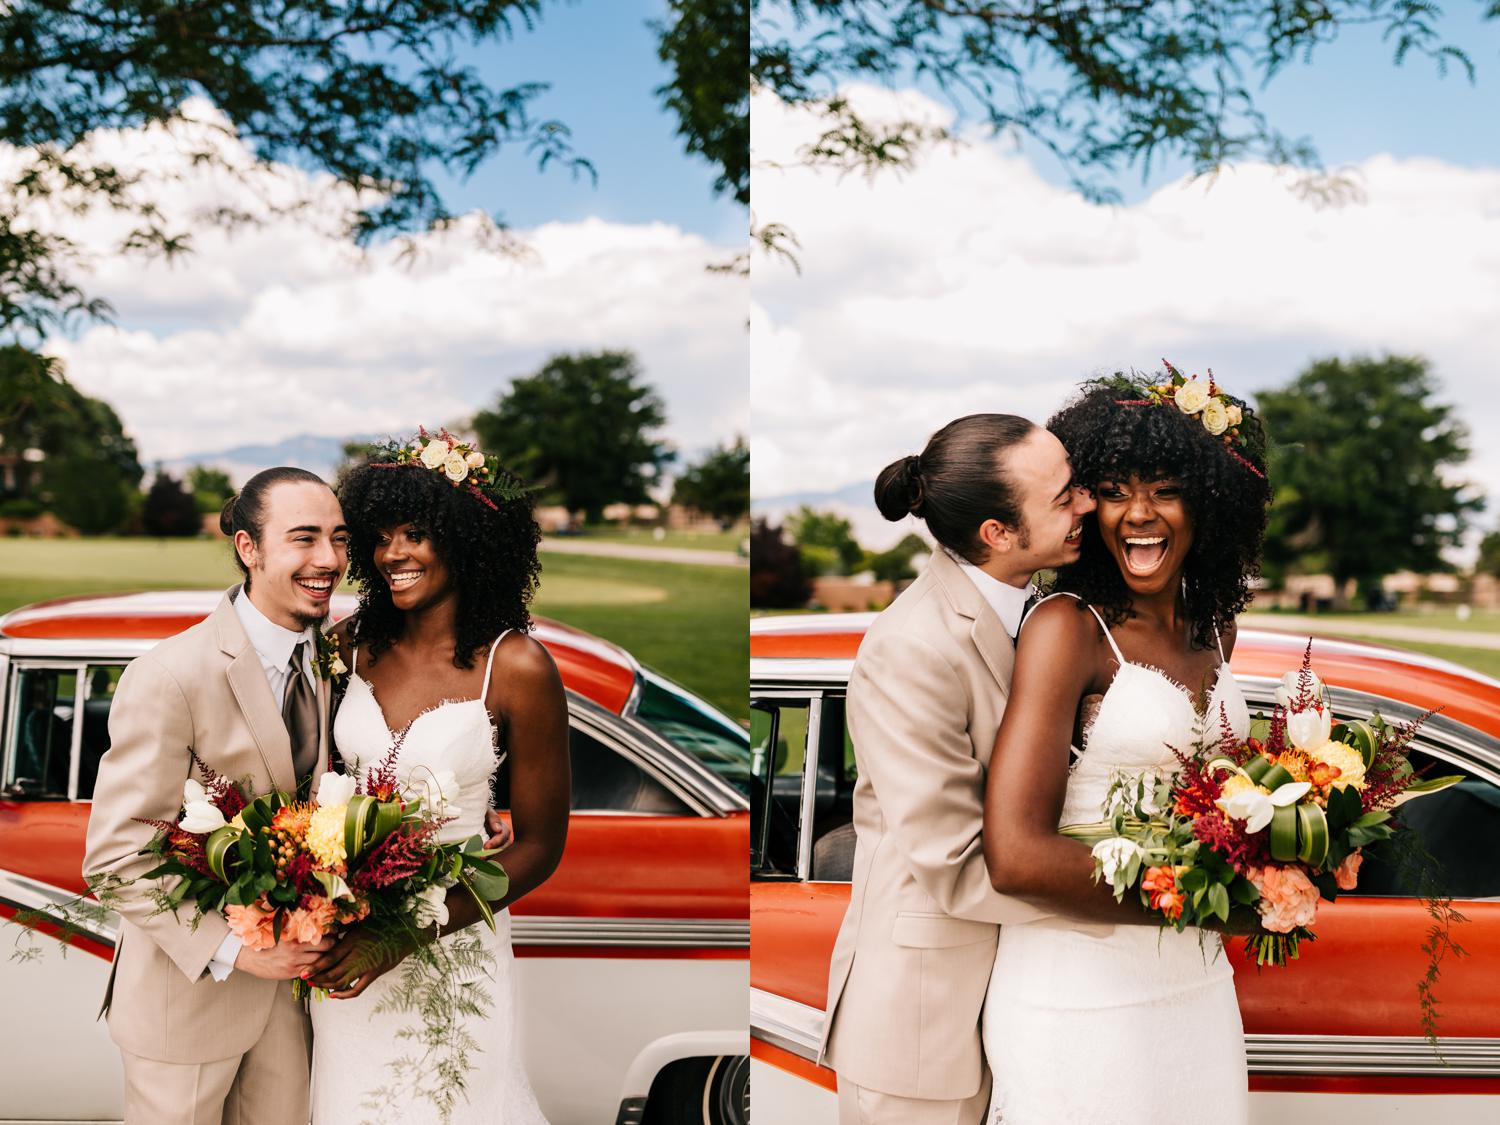 Playful bride and groom laughing with vibrant red car in New Mexico